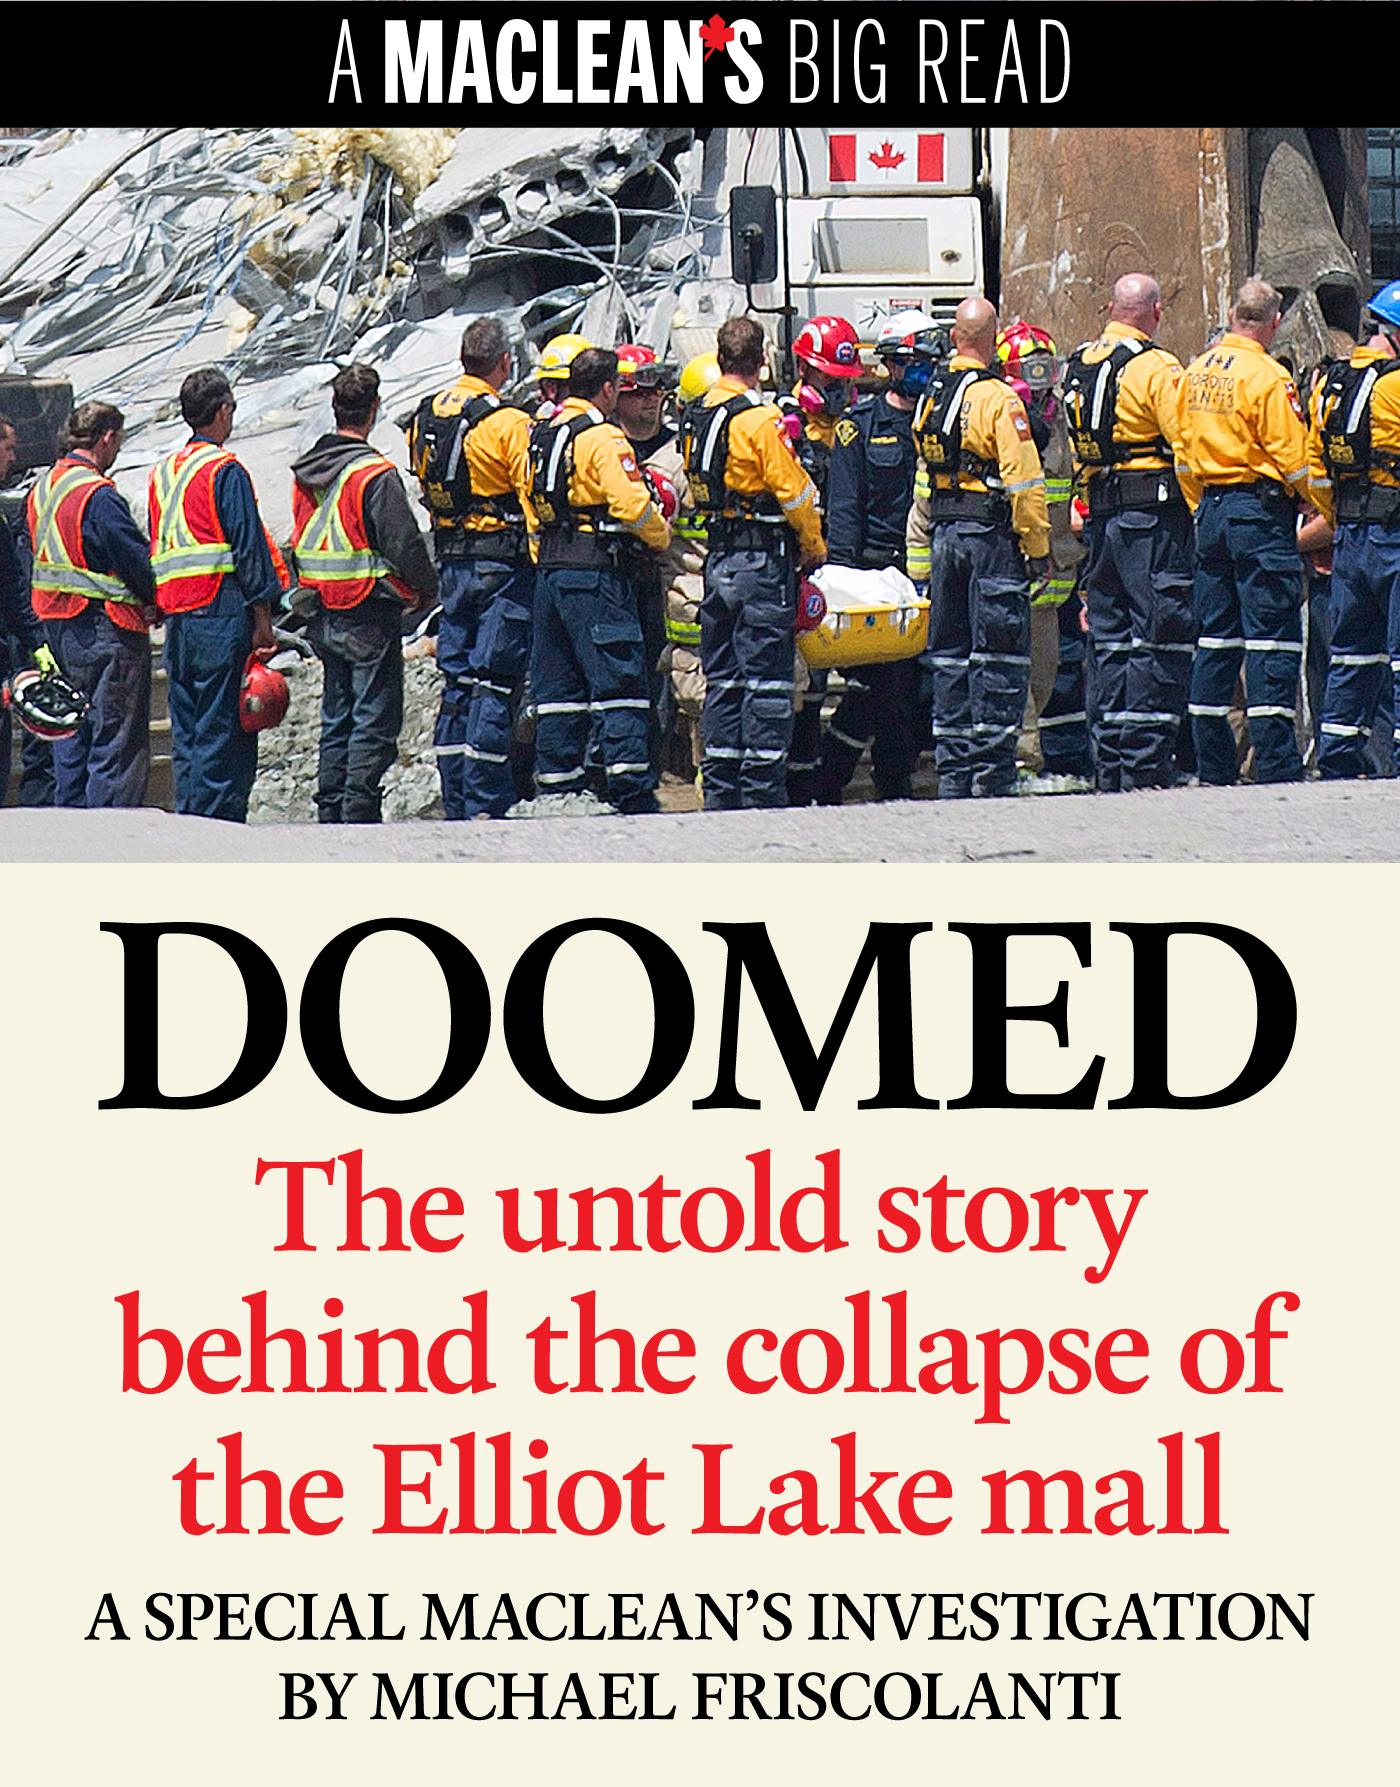 Doomed: The untold story behind the collapse of the Elliot Lake mall By: Michael Friscolanti